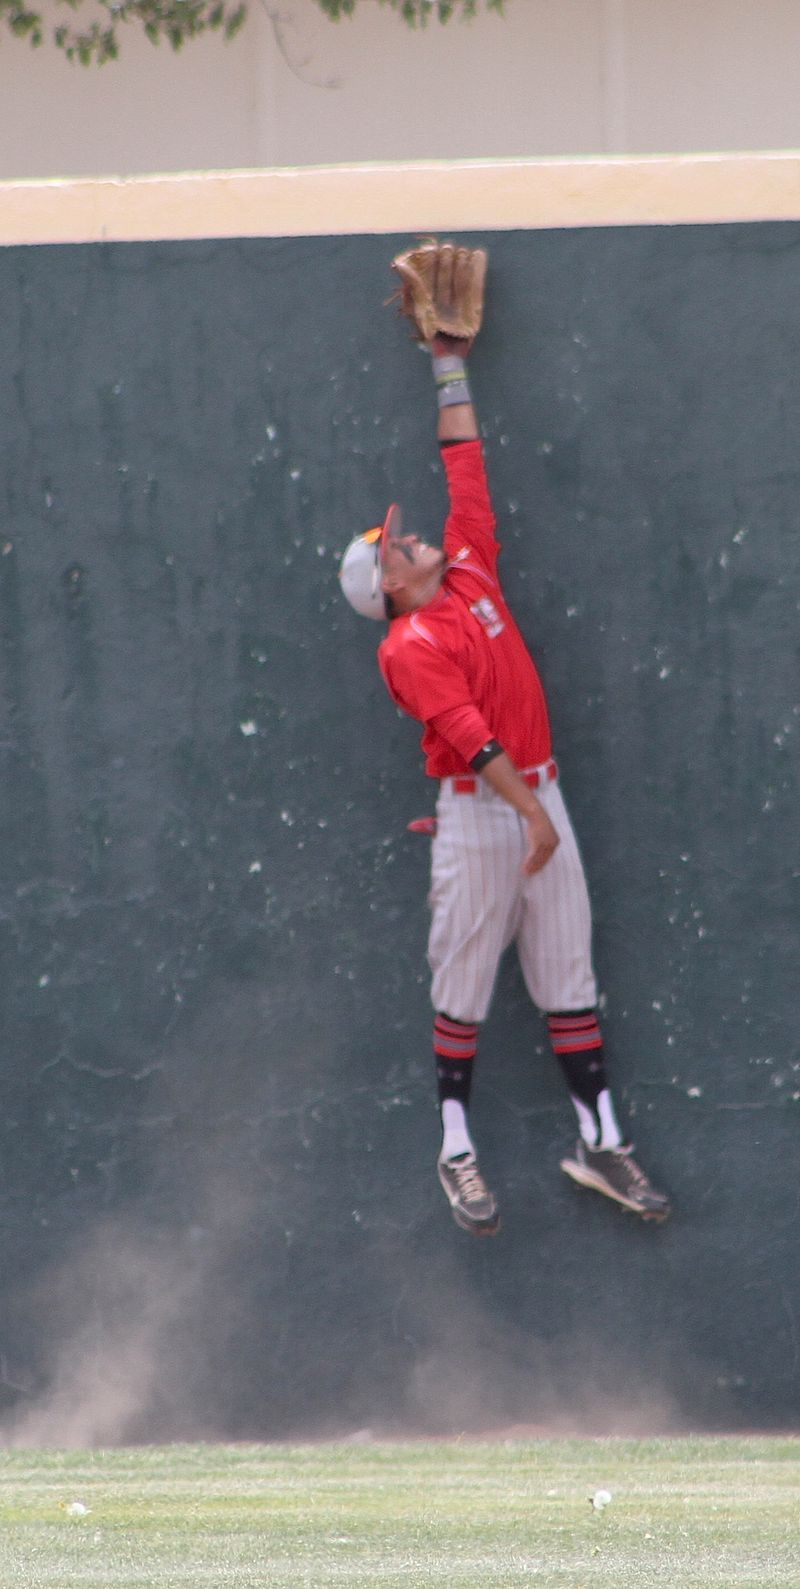 Lobos pic22-my best pic-Ozzie leaps but its a home run